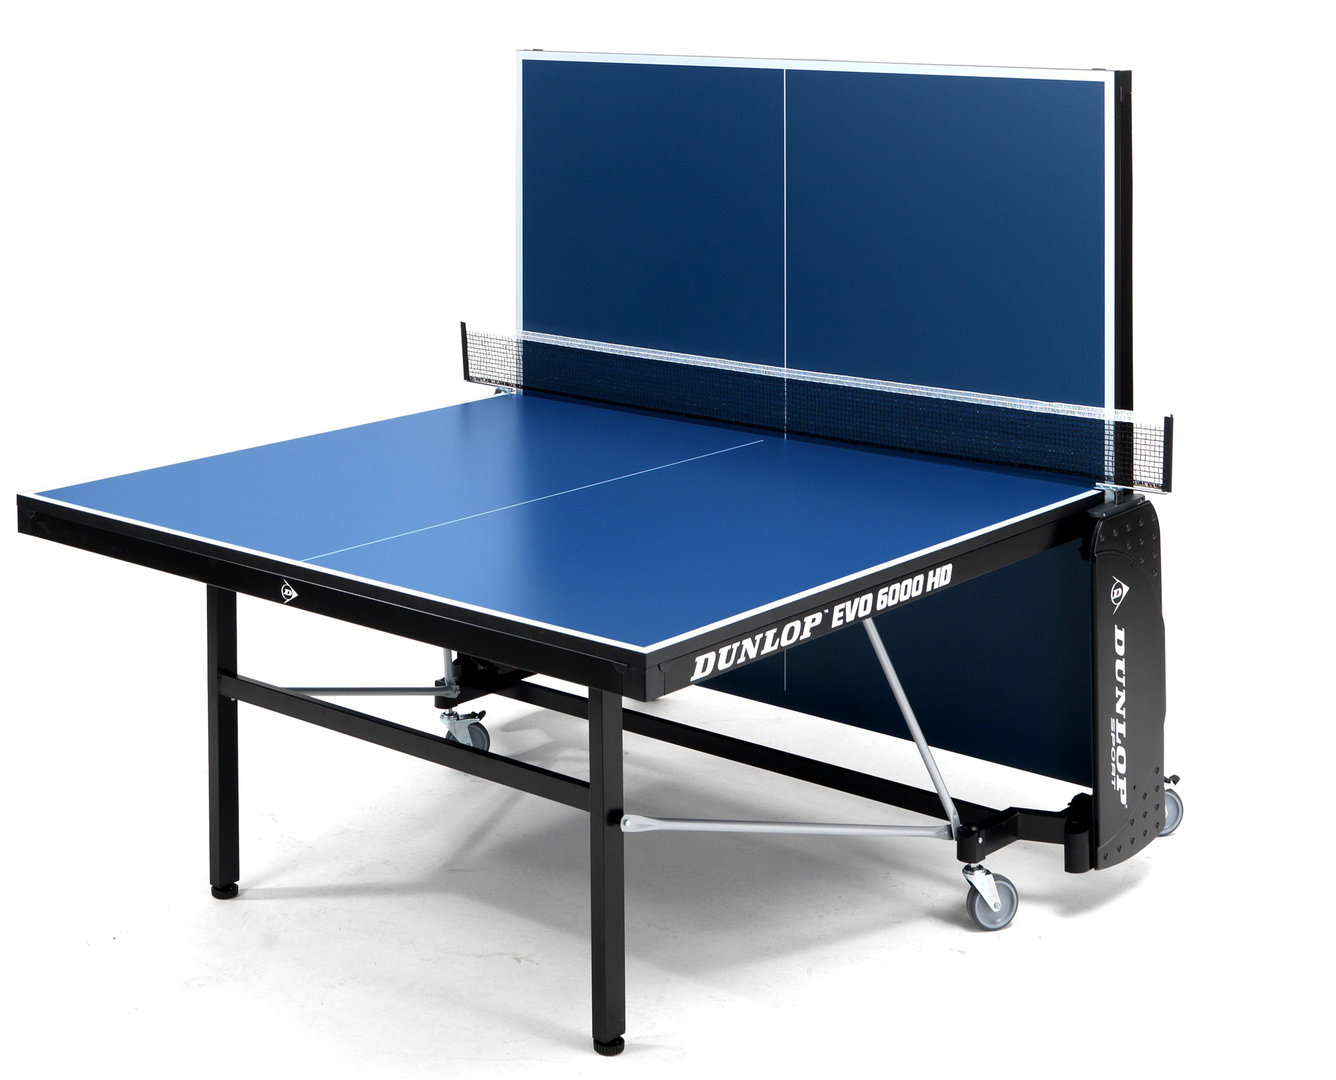 Dunlop evo 6000 hd full size indoor table tennis table in - Full size table tennis table dimensions ...